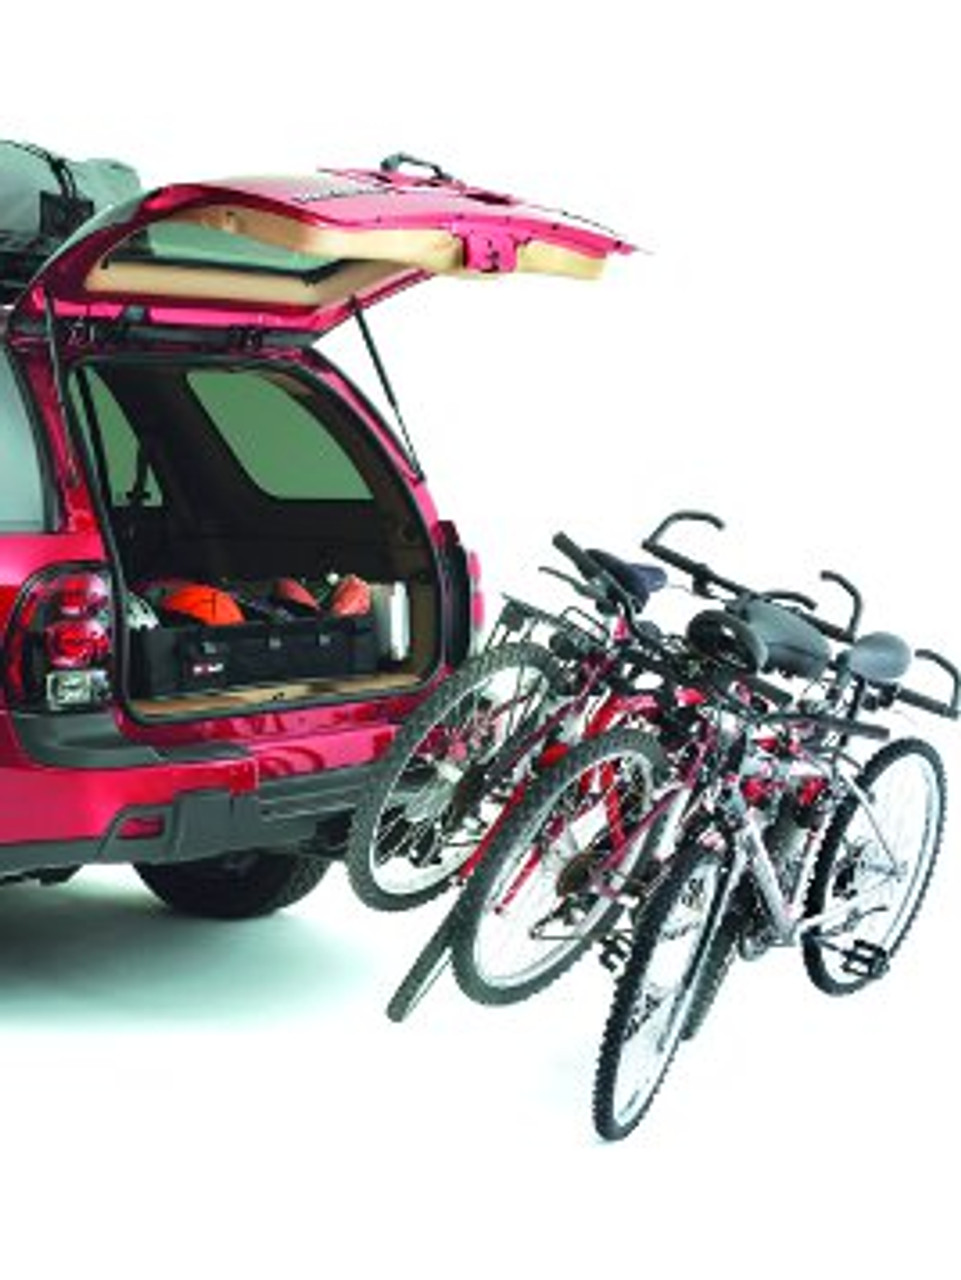 59401 --- 4 Bike Carrier, ROLA TX Bike Carrier